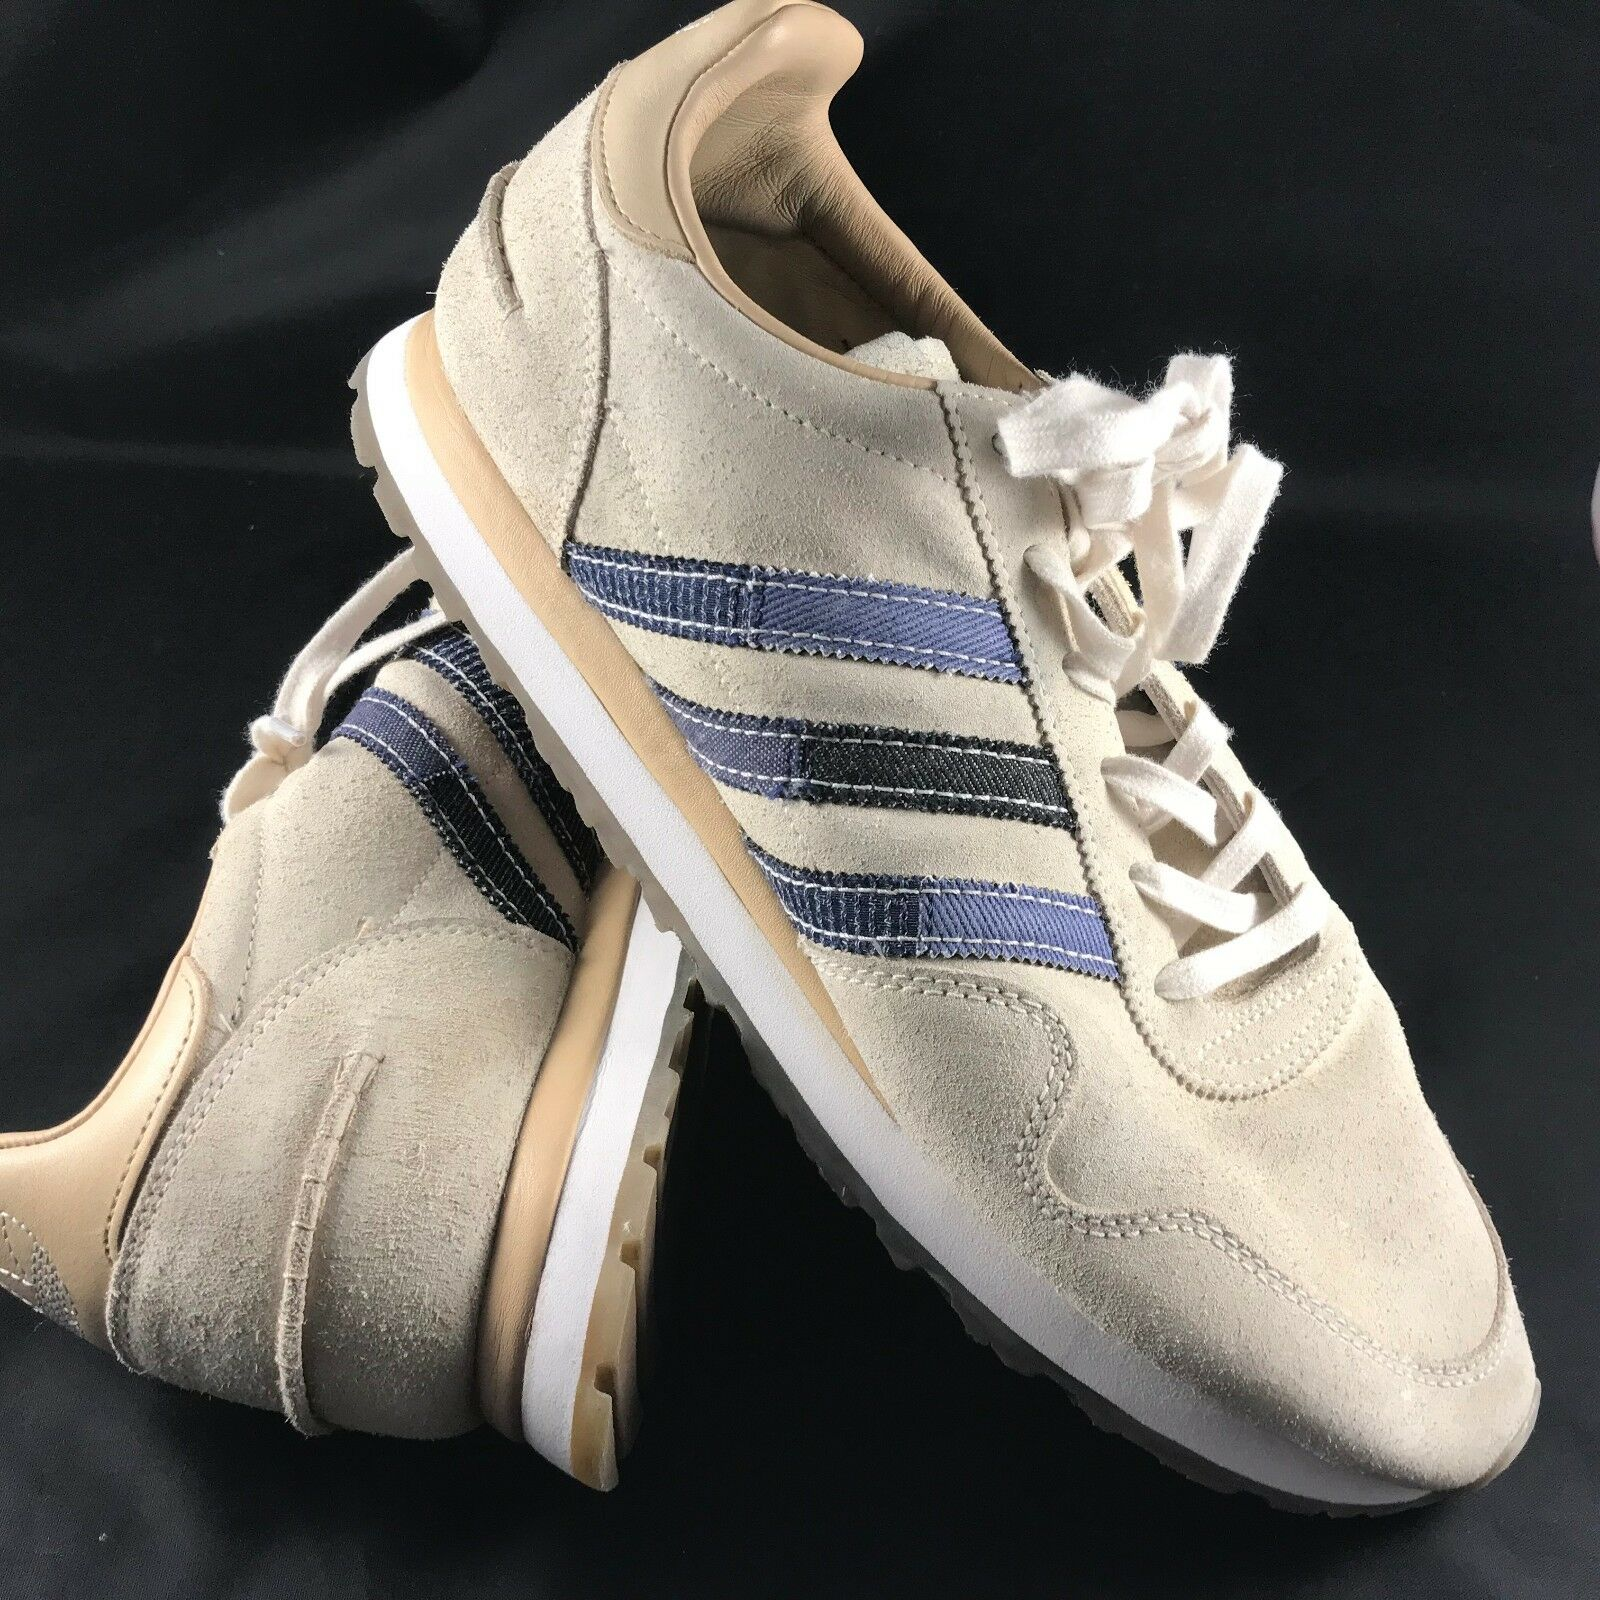 Adidas Consortium X Bodega Bodega Bodega X Embout Havre Soi Patchwork Cuir Suédé Jeans BY2103 39f1ae